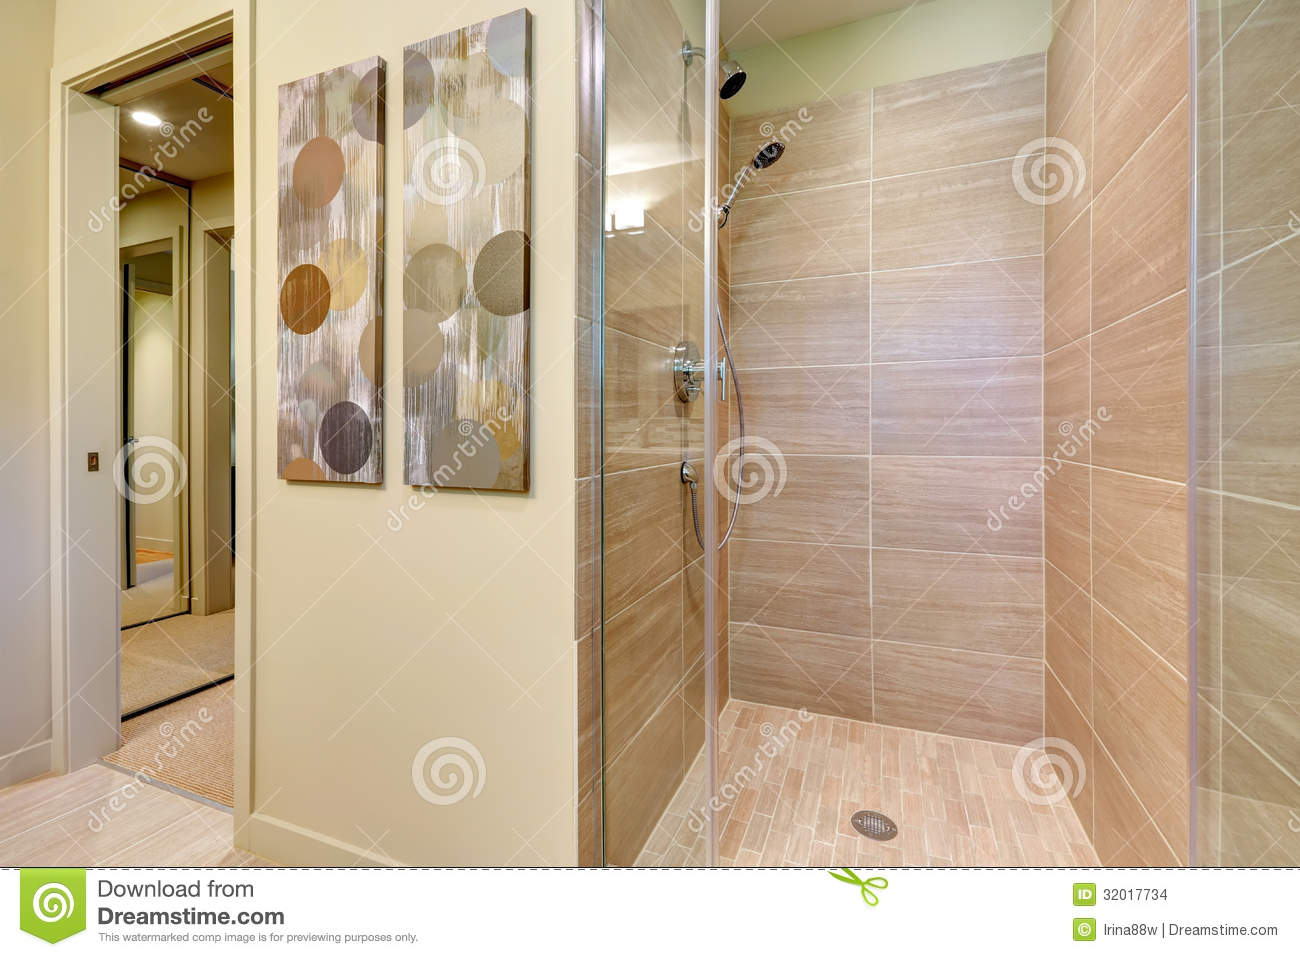 Bathroom Shower With Glass Doors And Natural Color Tiles